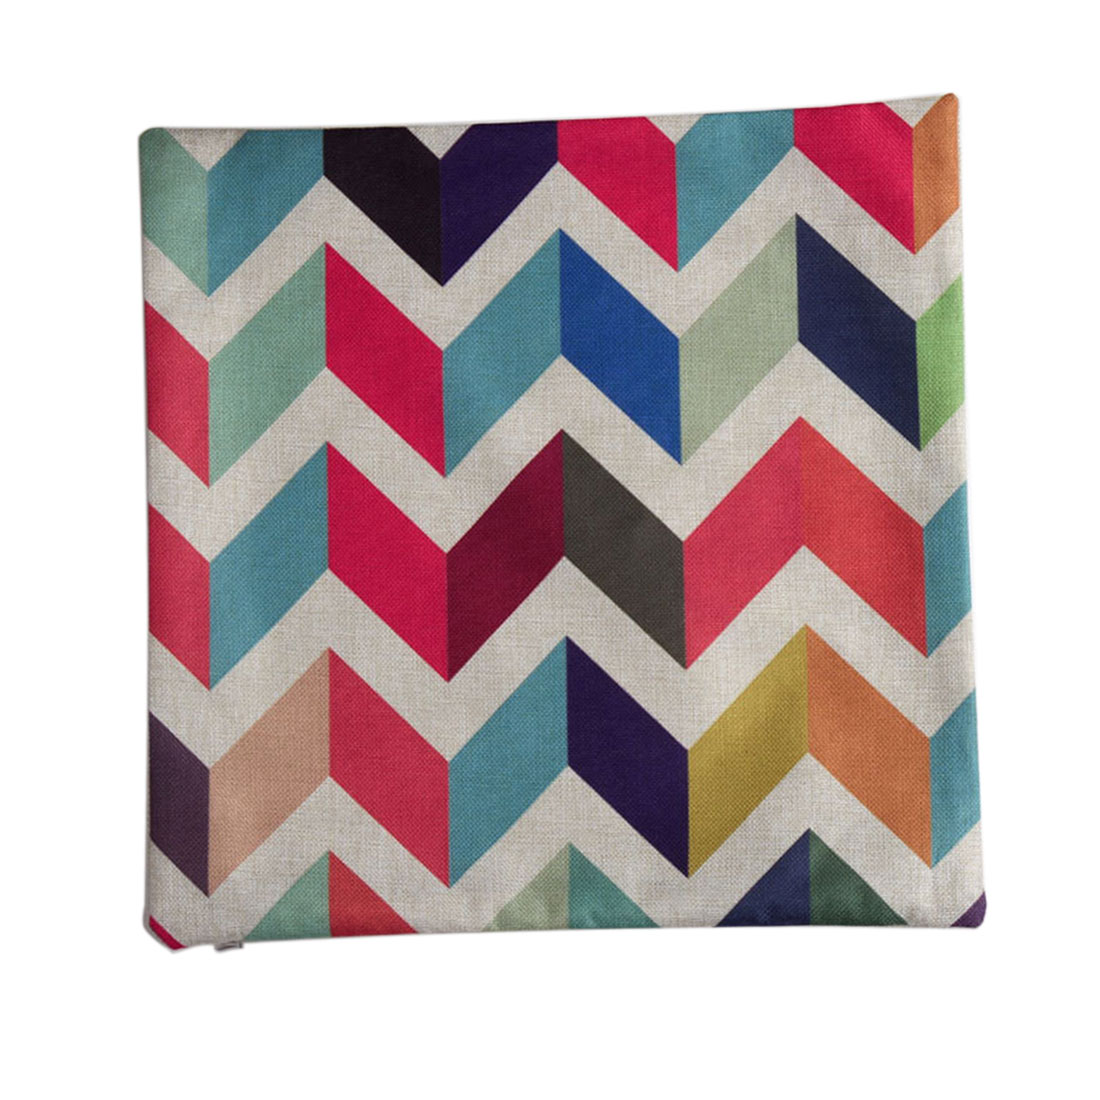 Piccocasa Sofa Linen Zigzag Pattern Cushion Cover Pillow Case 45 x 45cm